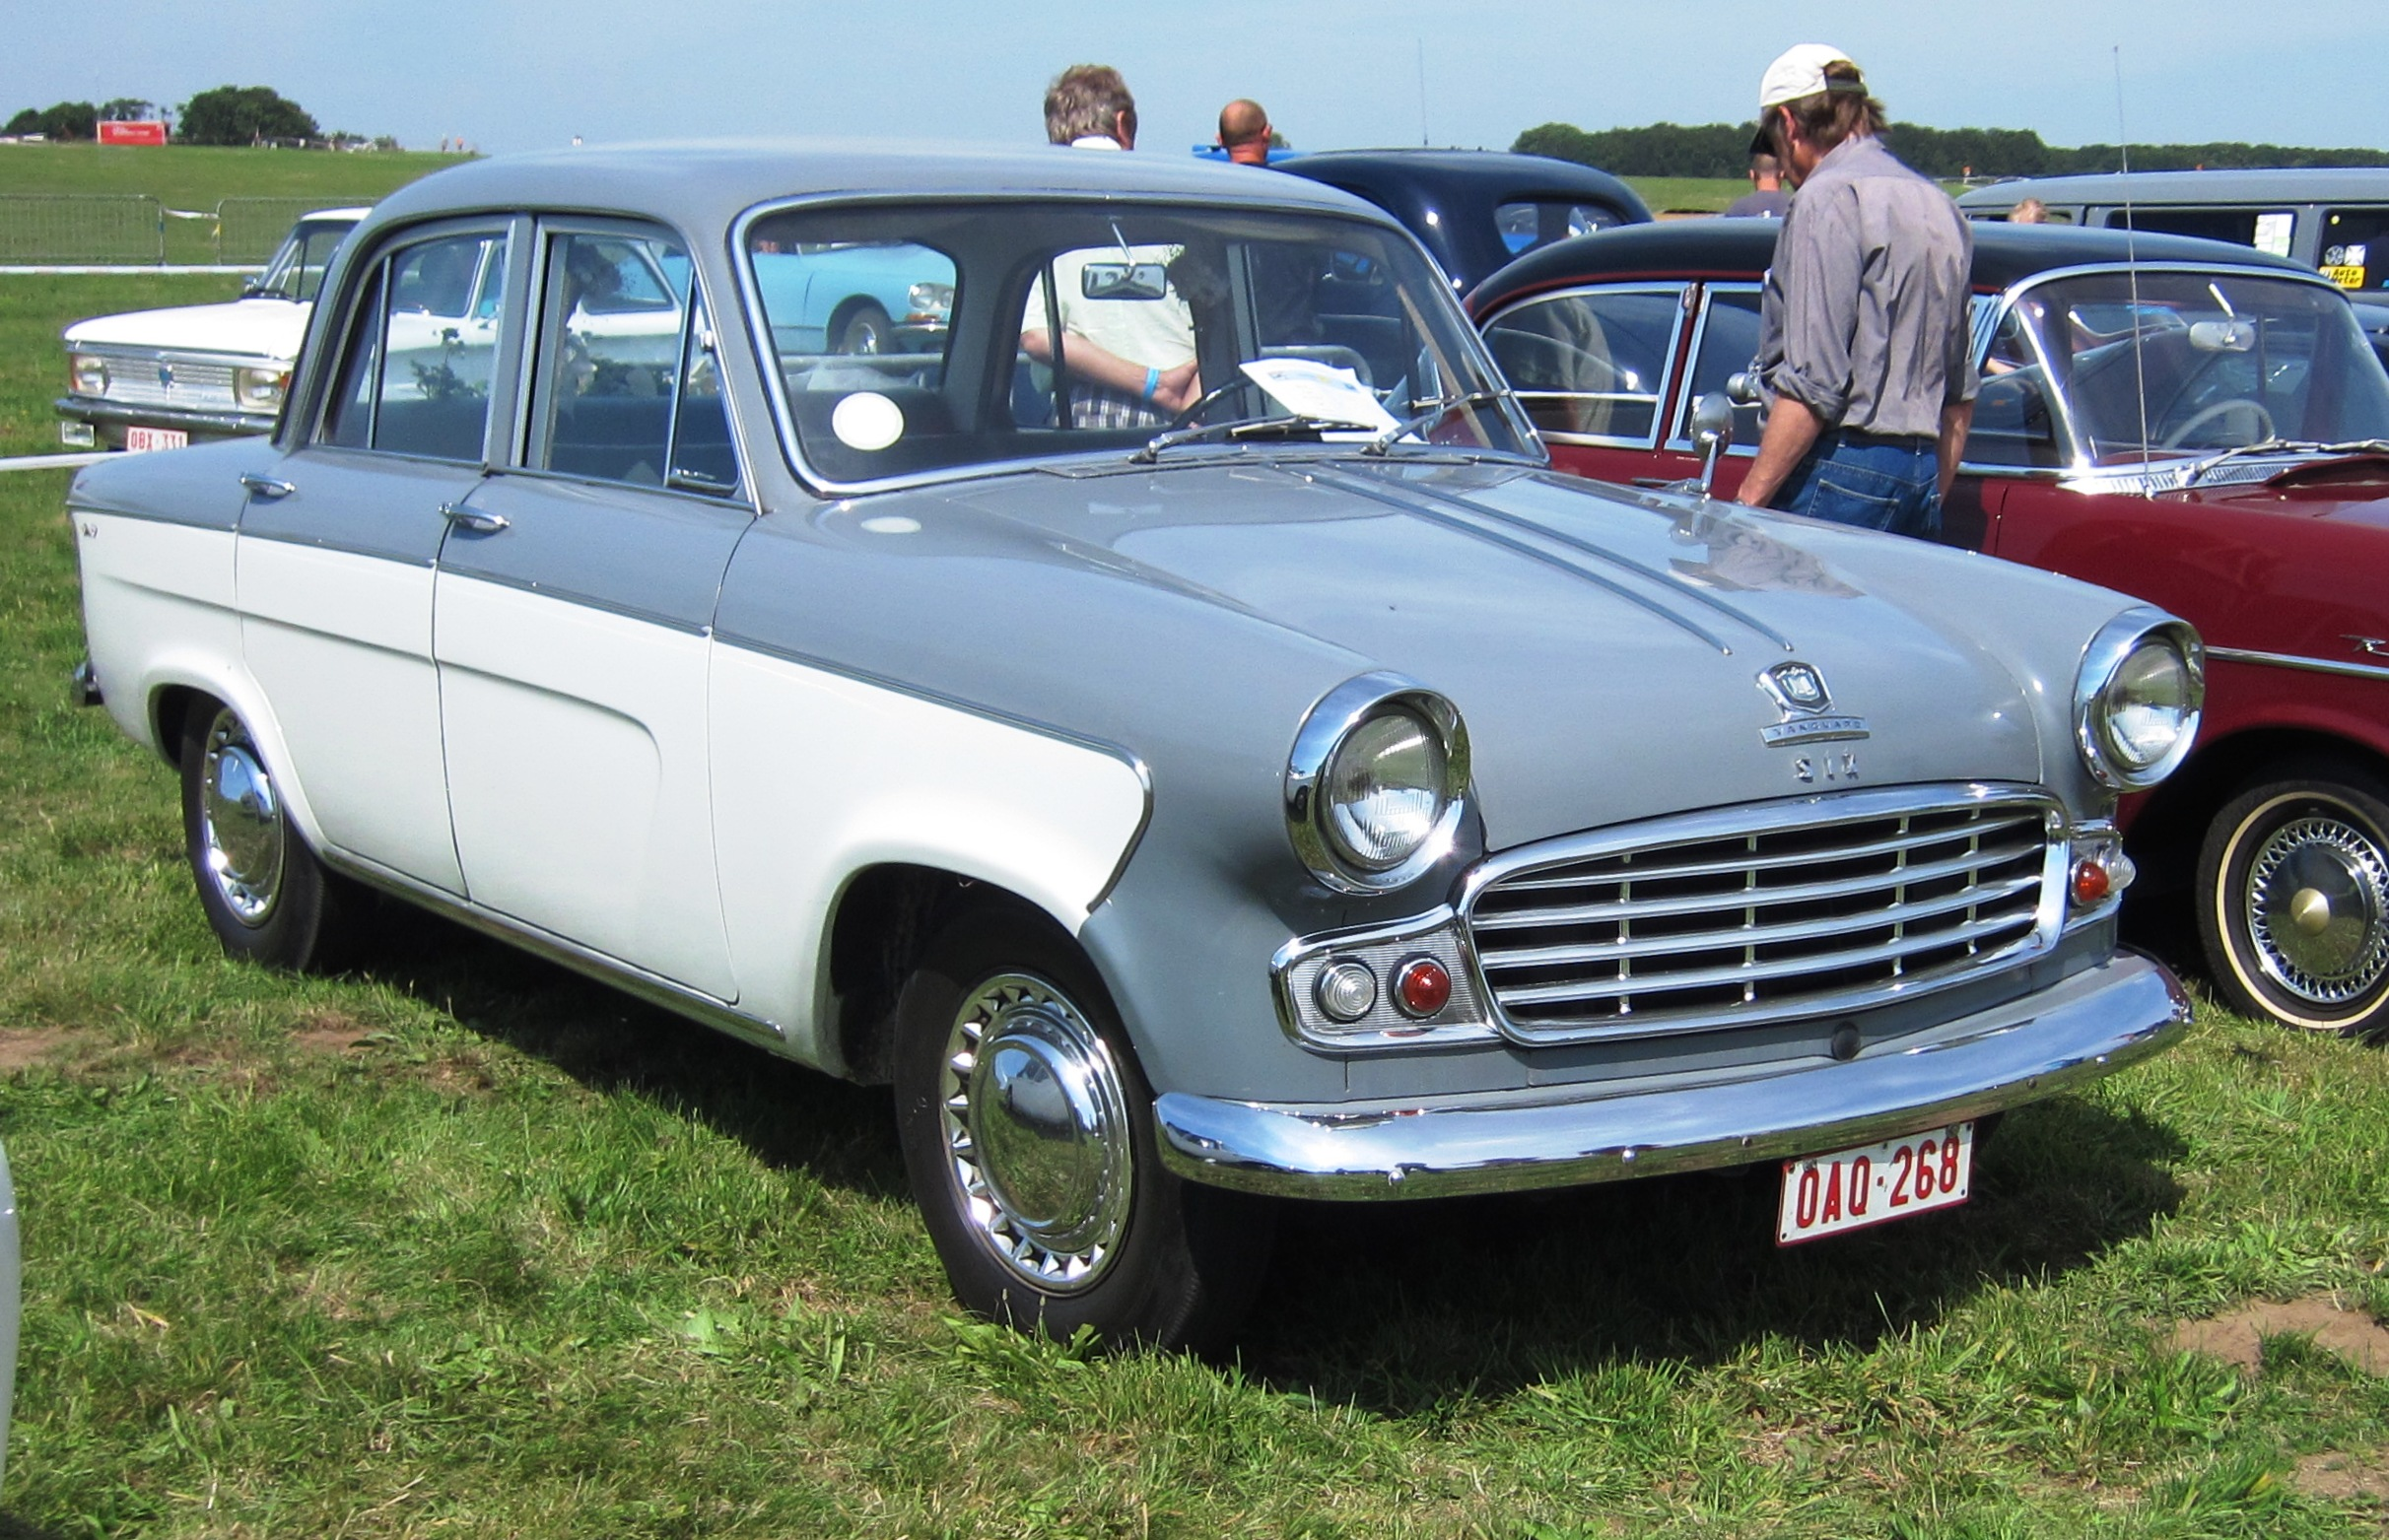 Standard Vanguard Six Photos And Comments Www Picautos Com